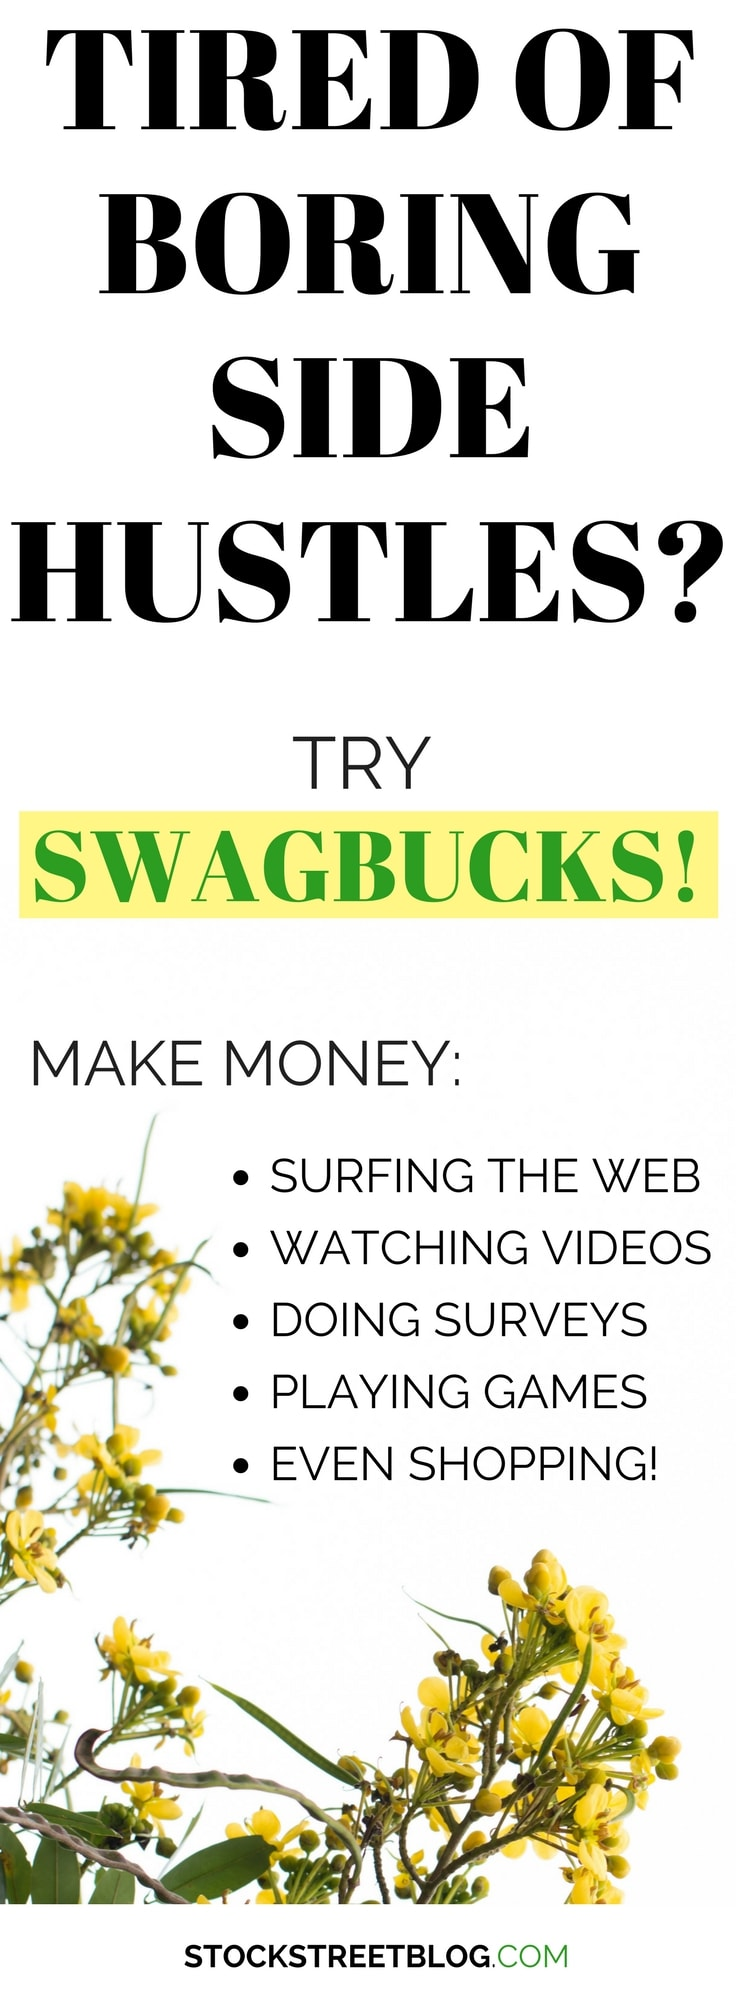 If you are tired of doing BORING side hustles, Swagbucks offers the opportunity to make some extra cash by doing various fun tasks! You will not get rich, but you can monetize your free time by watching videos, surfing the web, doing surveys, and more! #makemoney #financialfreedom #personalfinance #sidegig #sidehustle #WAHM #SAHM #makemoneyonline #saving